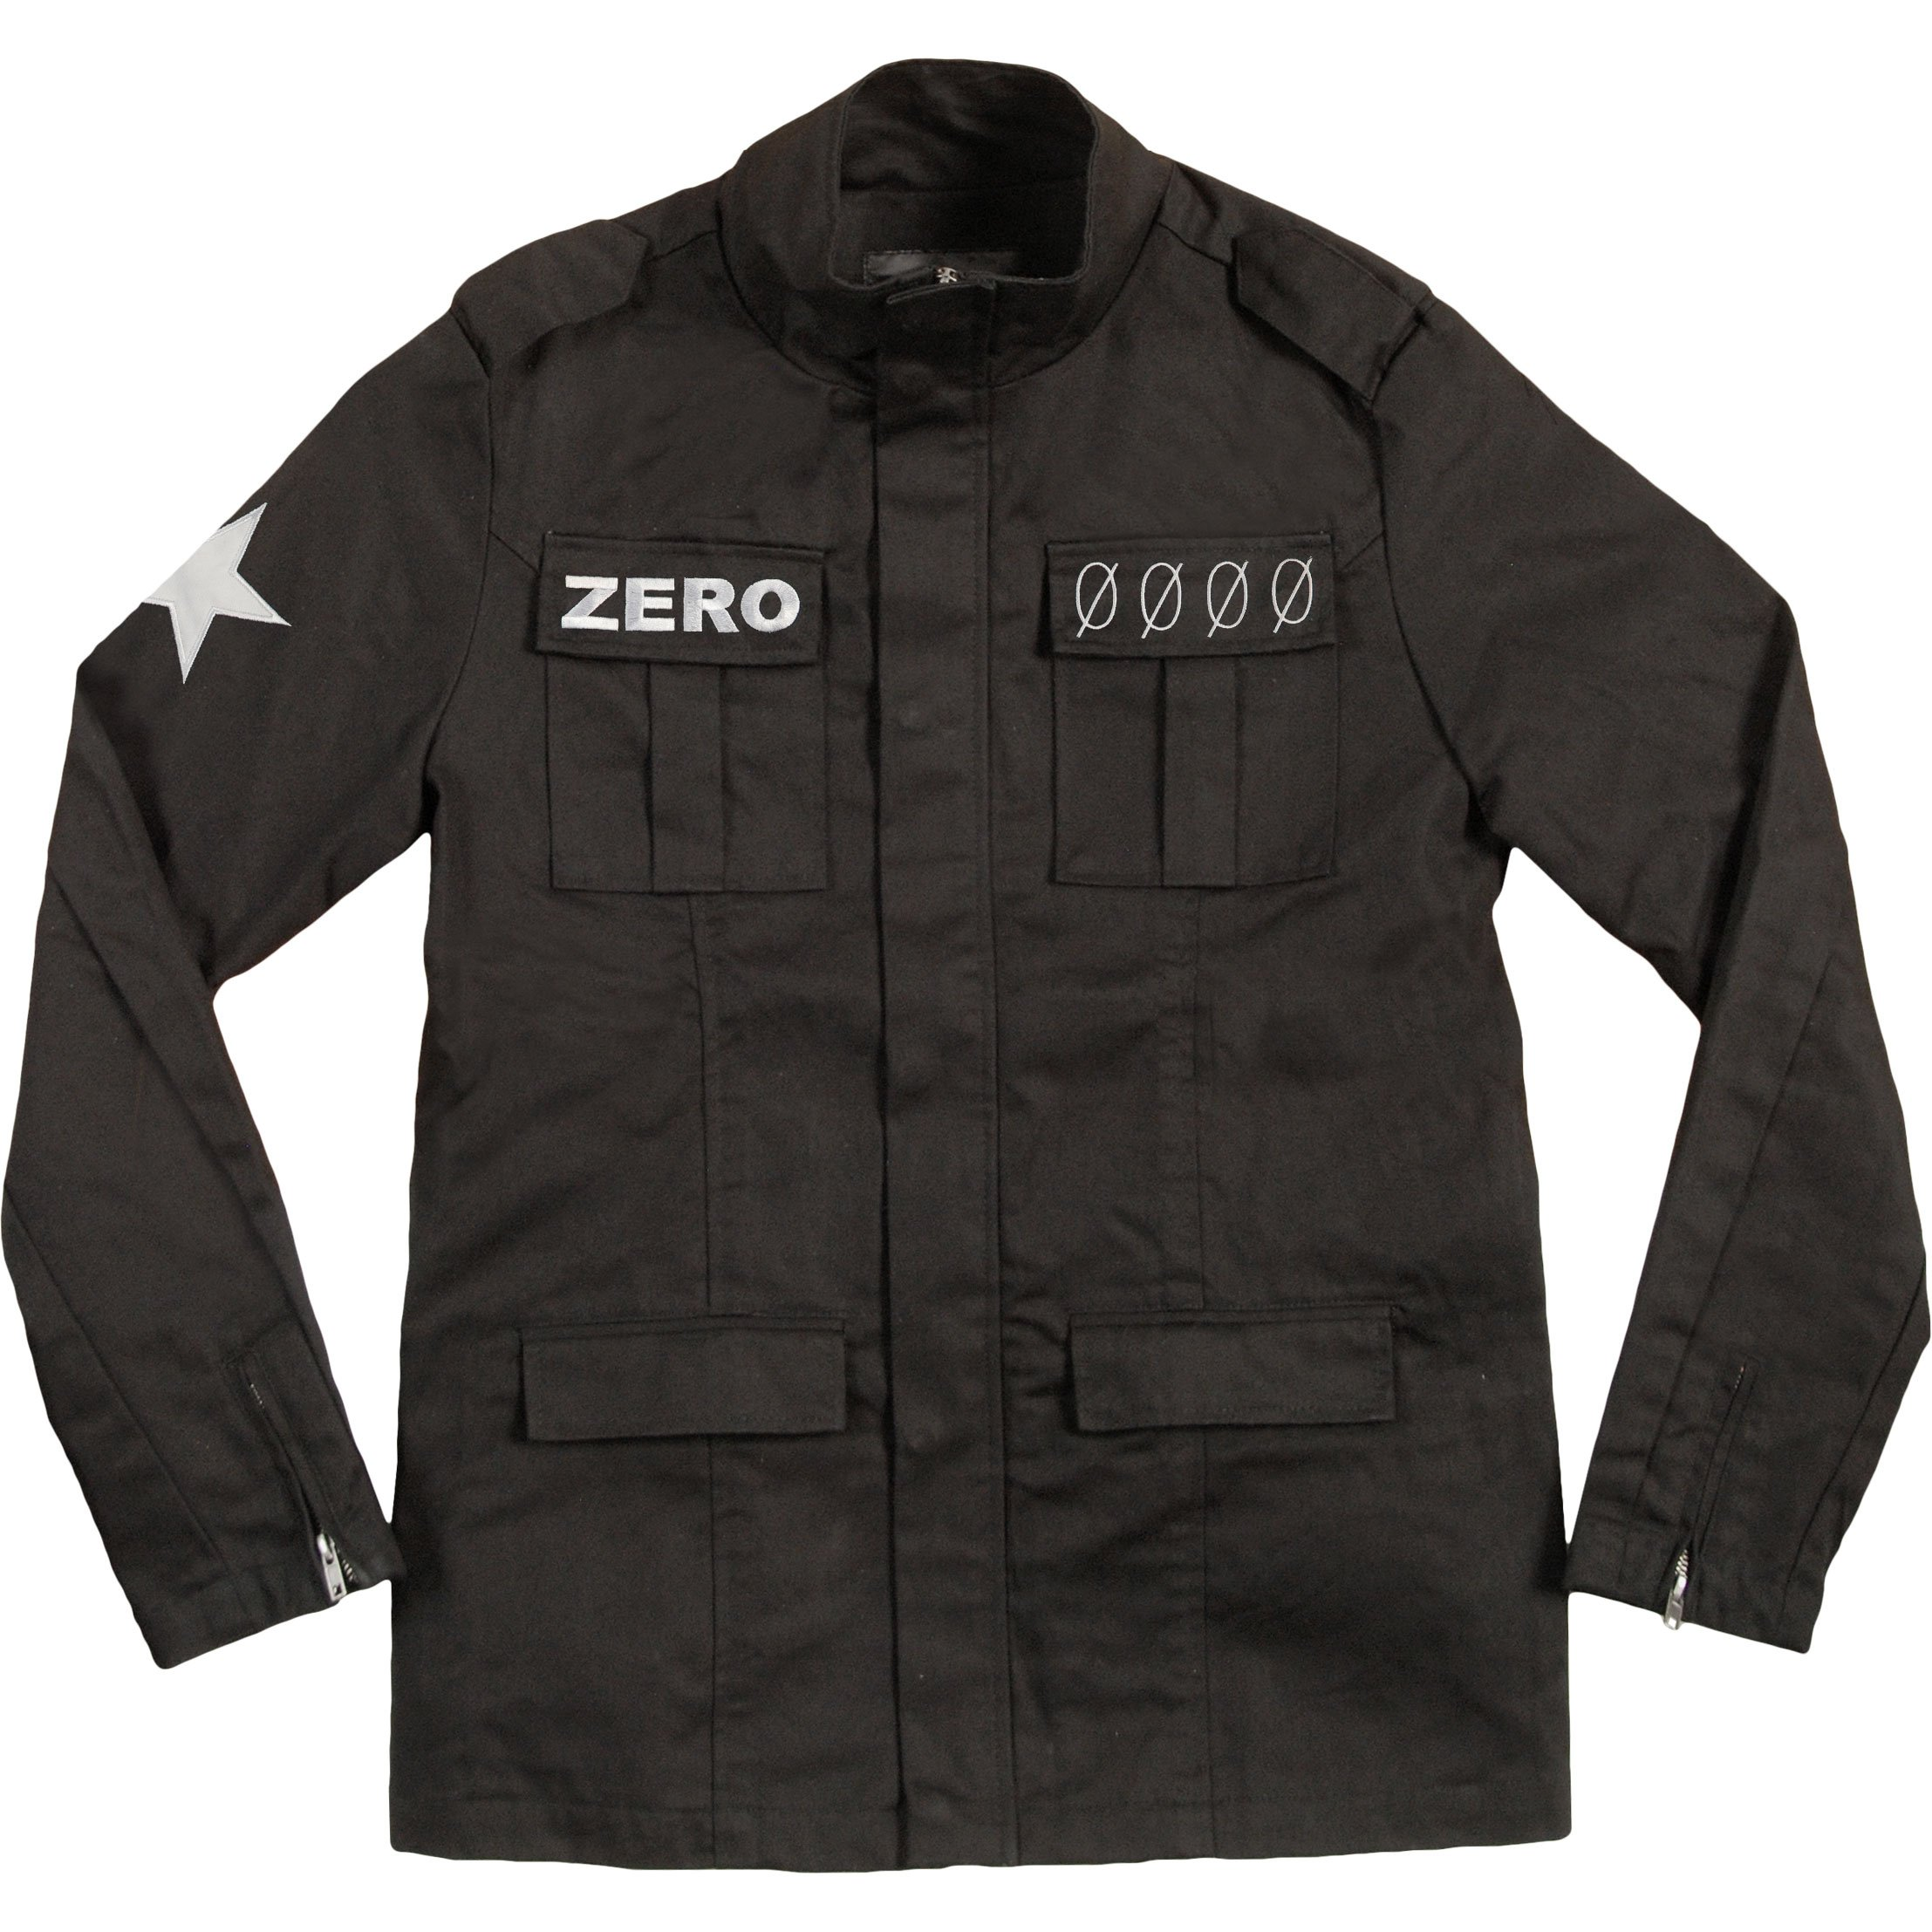 Smashing Pumpkins Men's Army Jacket Small Black by Unknown